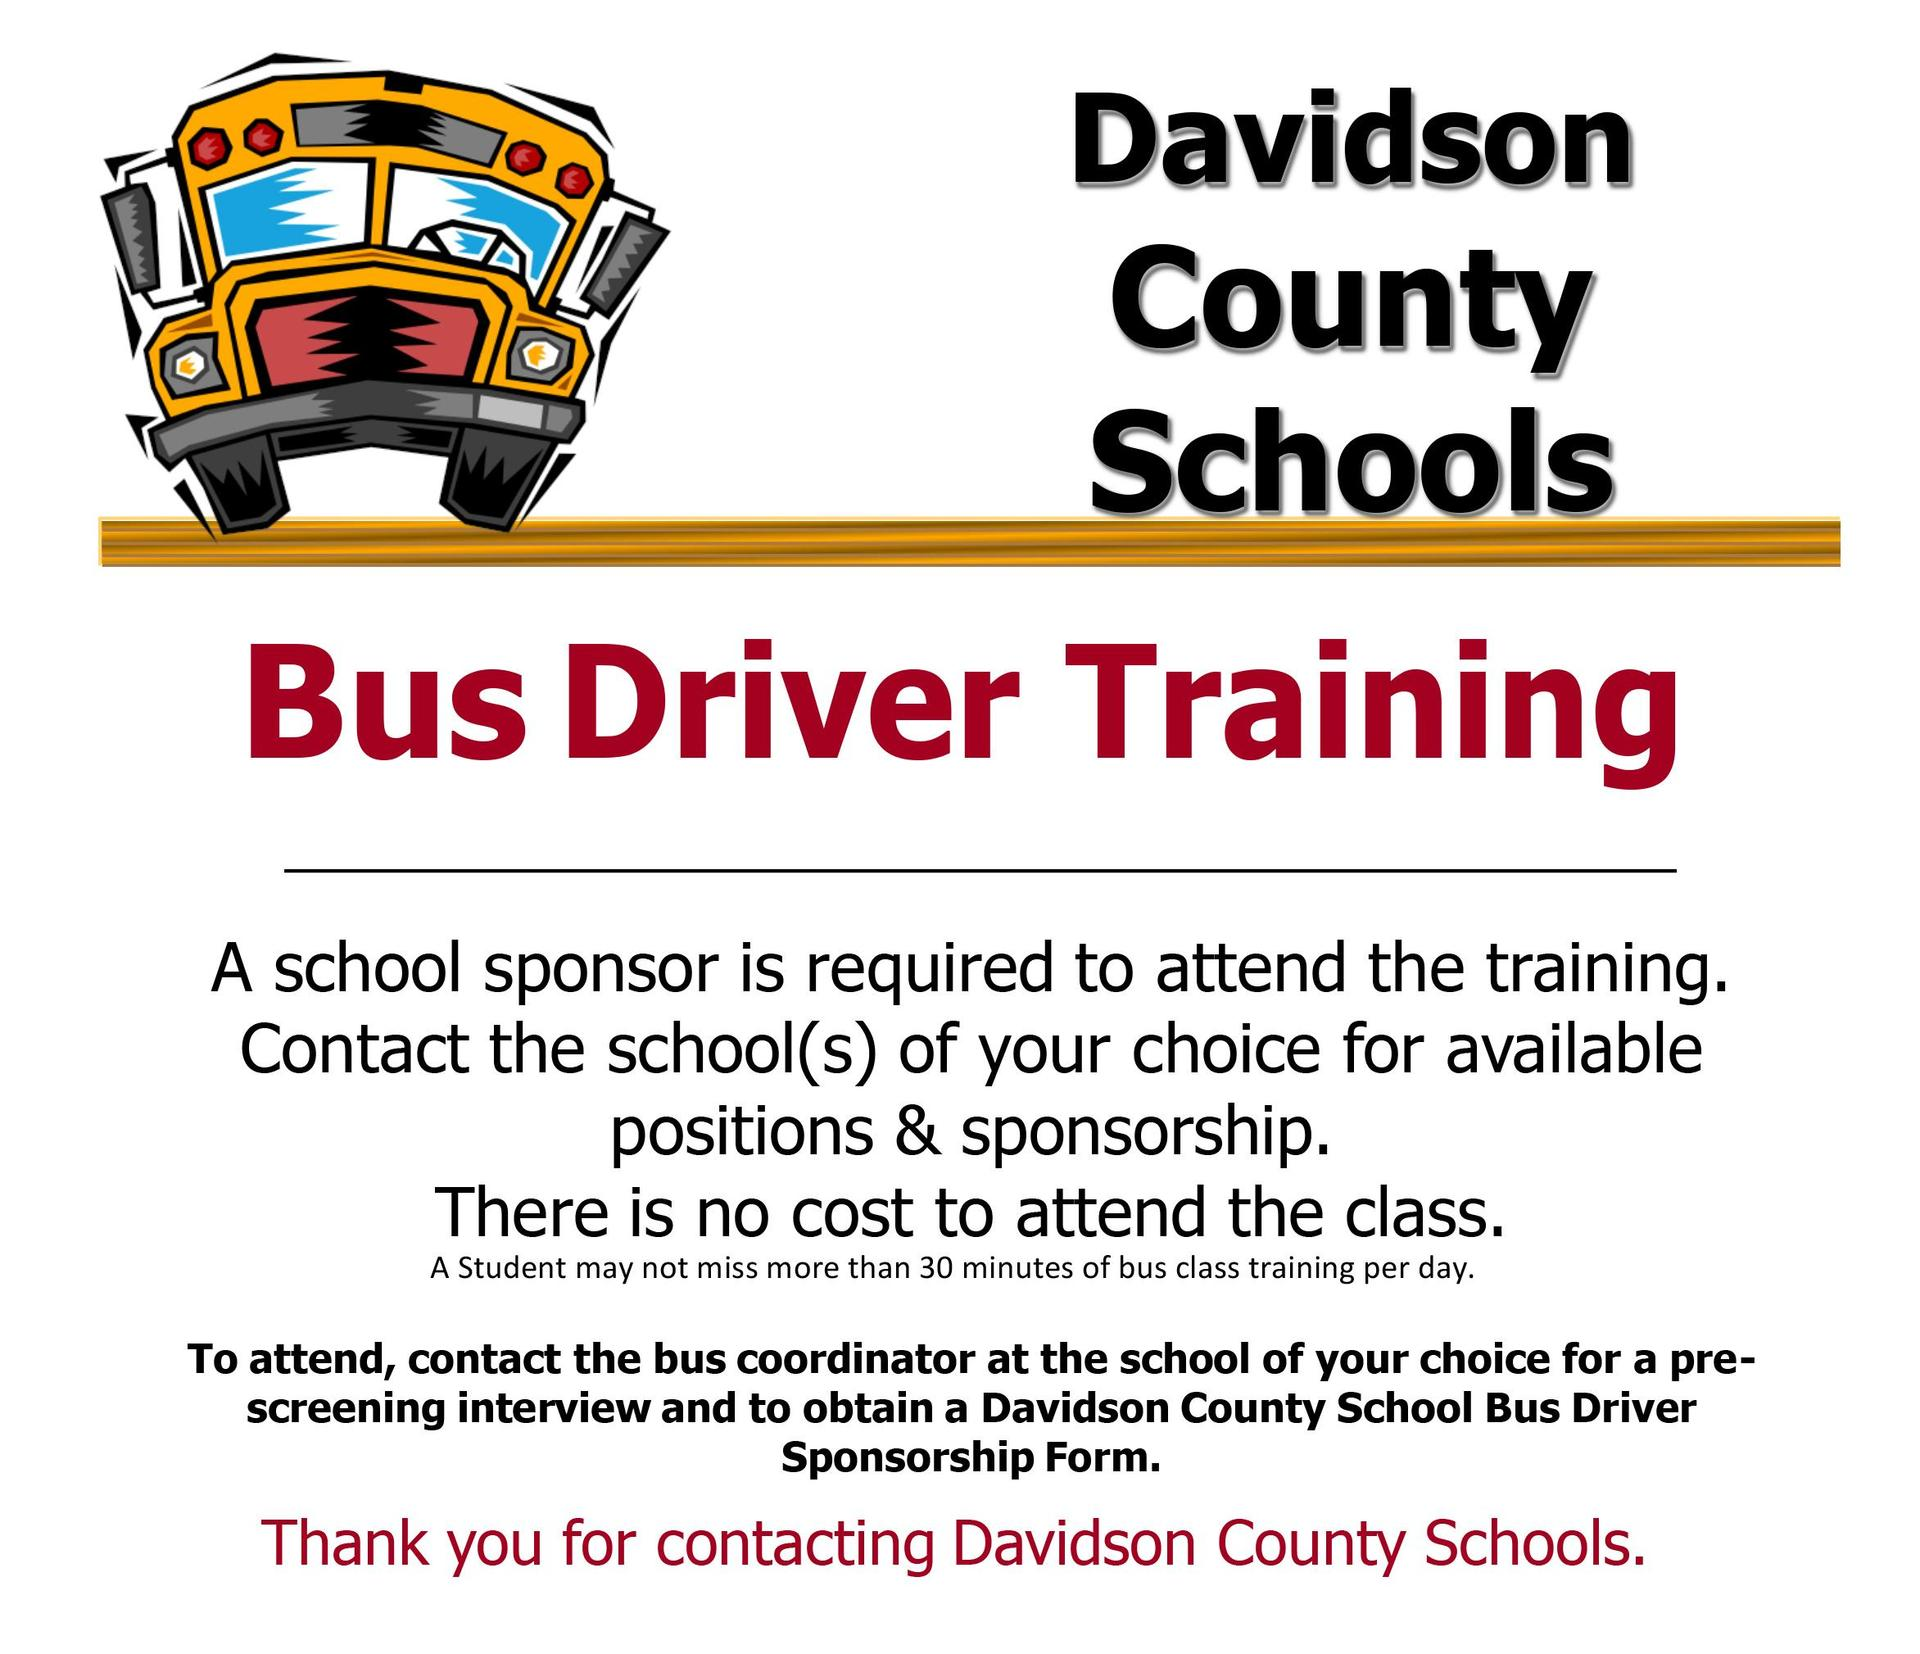 Bus Driver Training